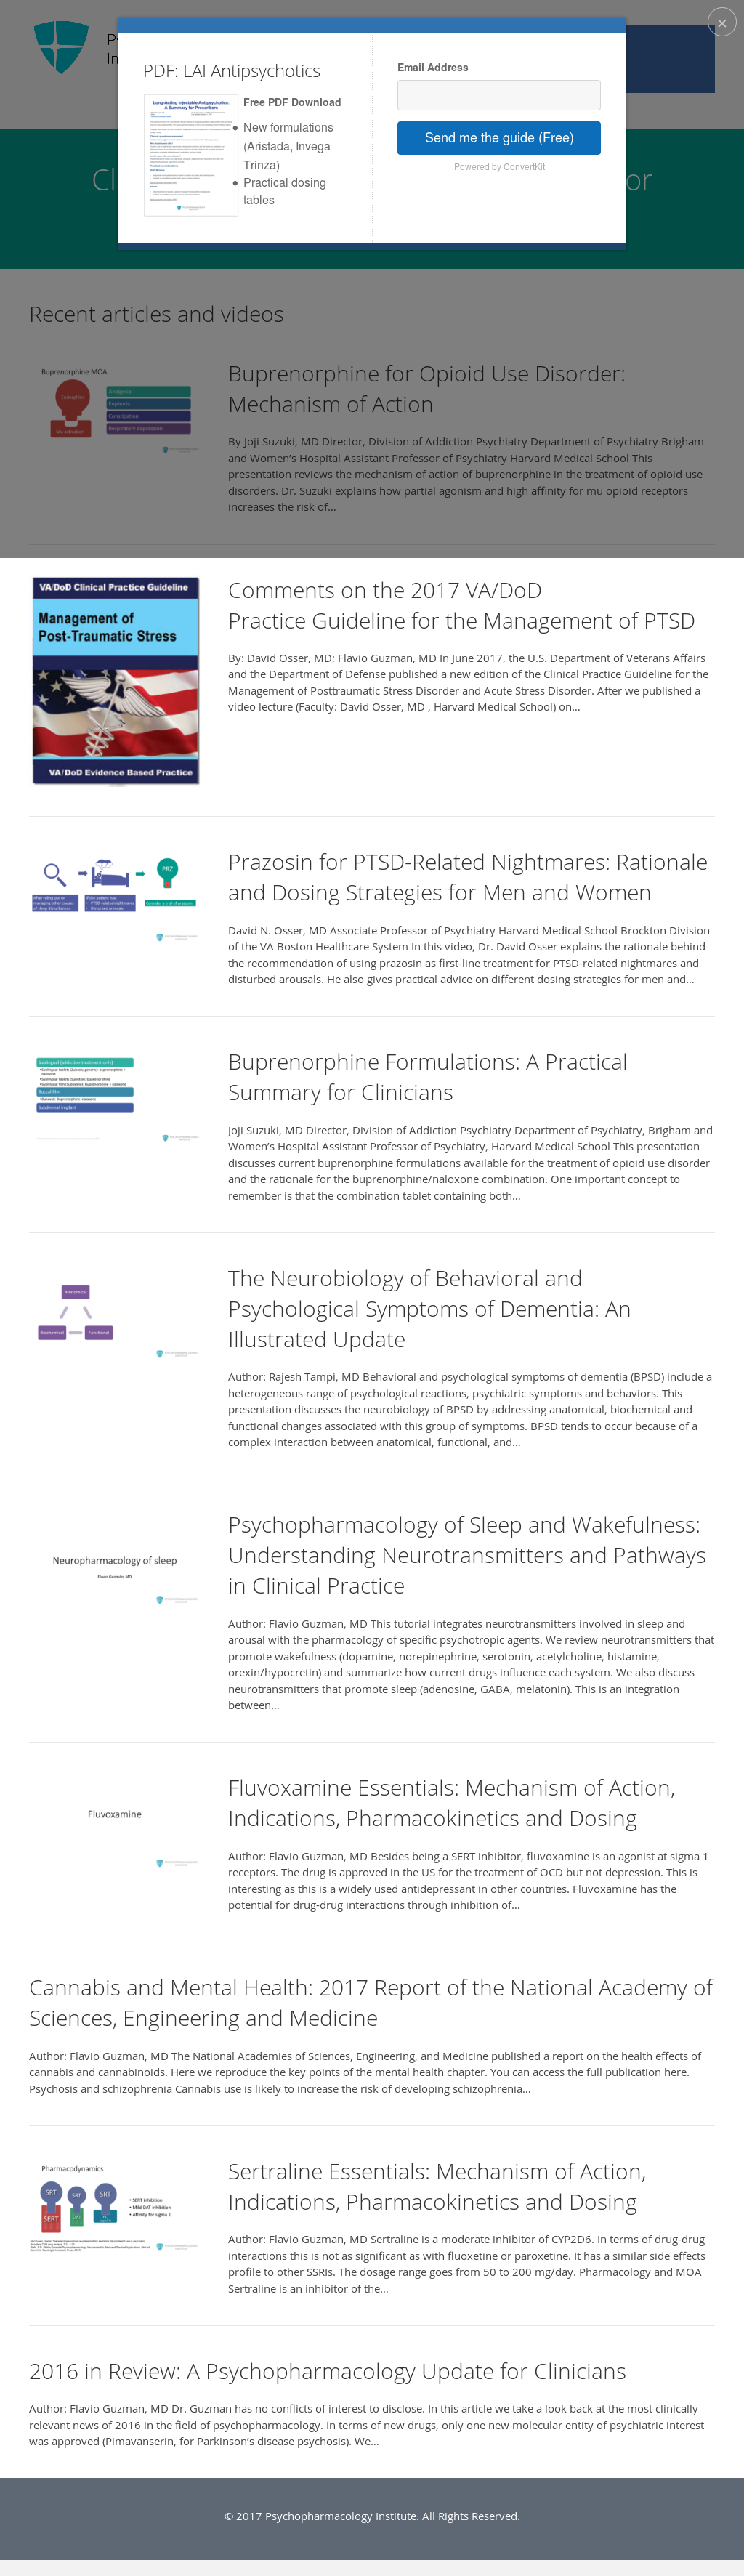 Psychopharmacology Institute Competitors, Revenue and